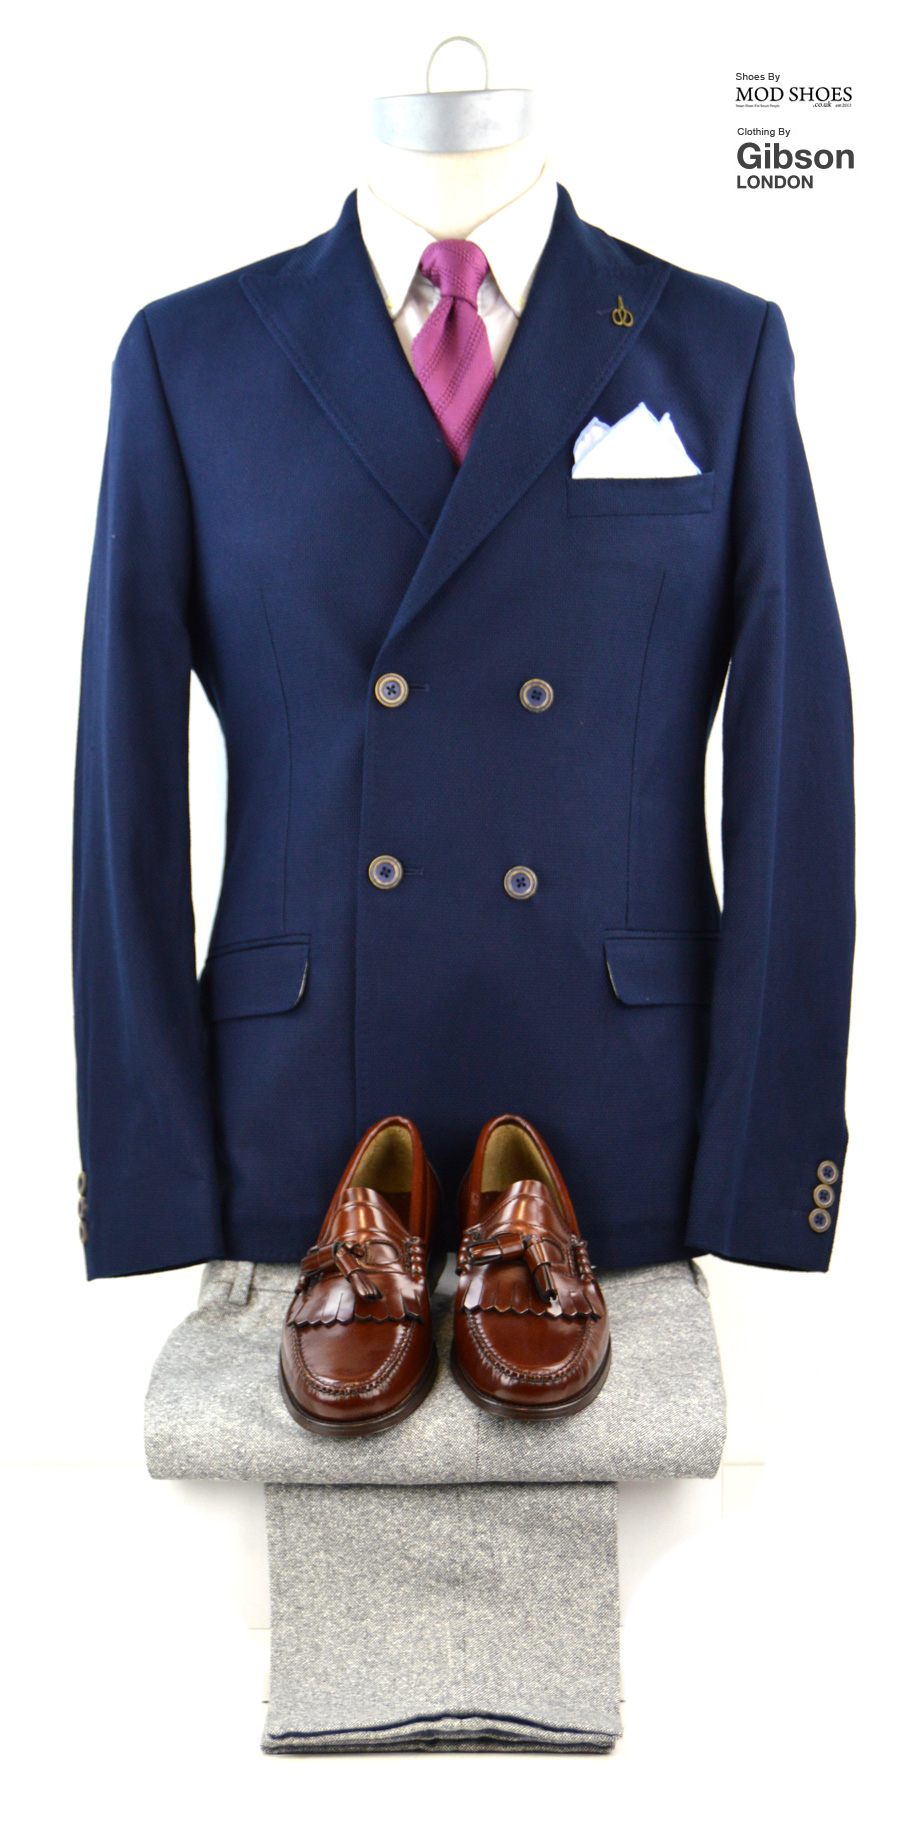 modshoes-chestnuyt-tassel-loafers-with-blue-jacket-form-gibson-clothing